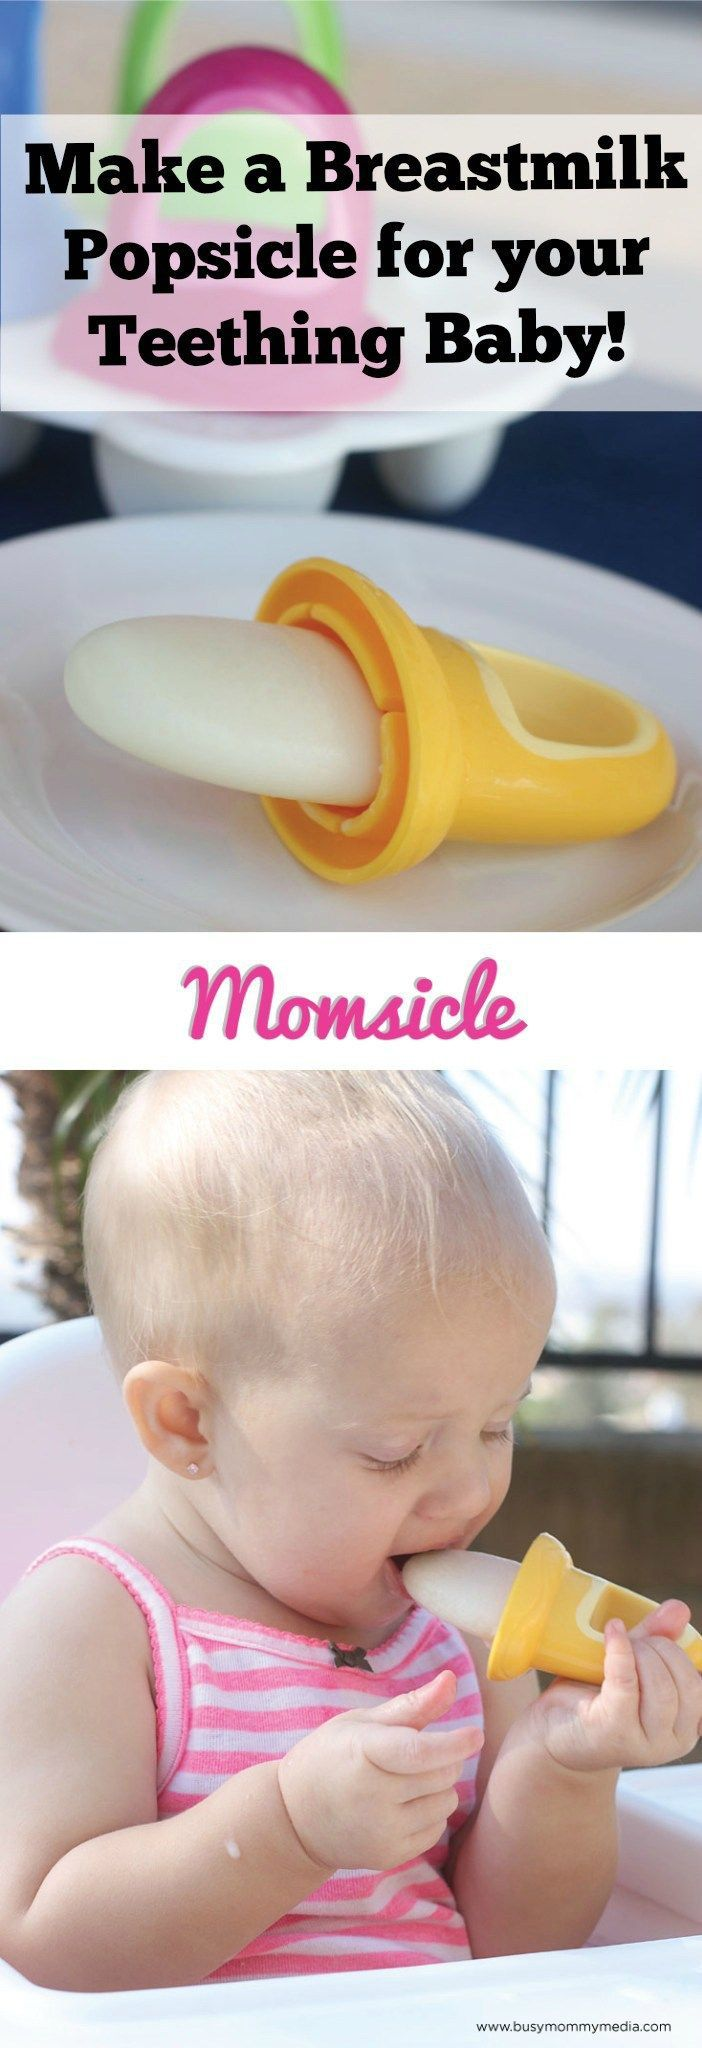 Momsicle A K A Breastmilk Popsicle Pregnancy